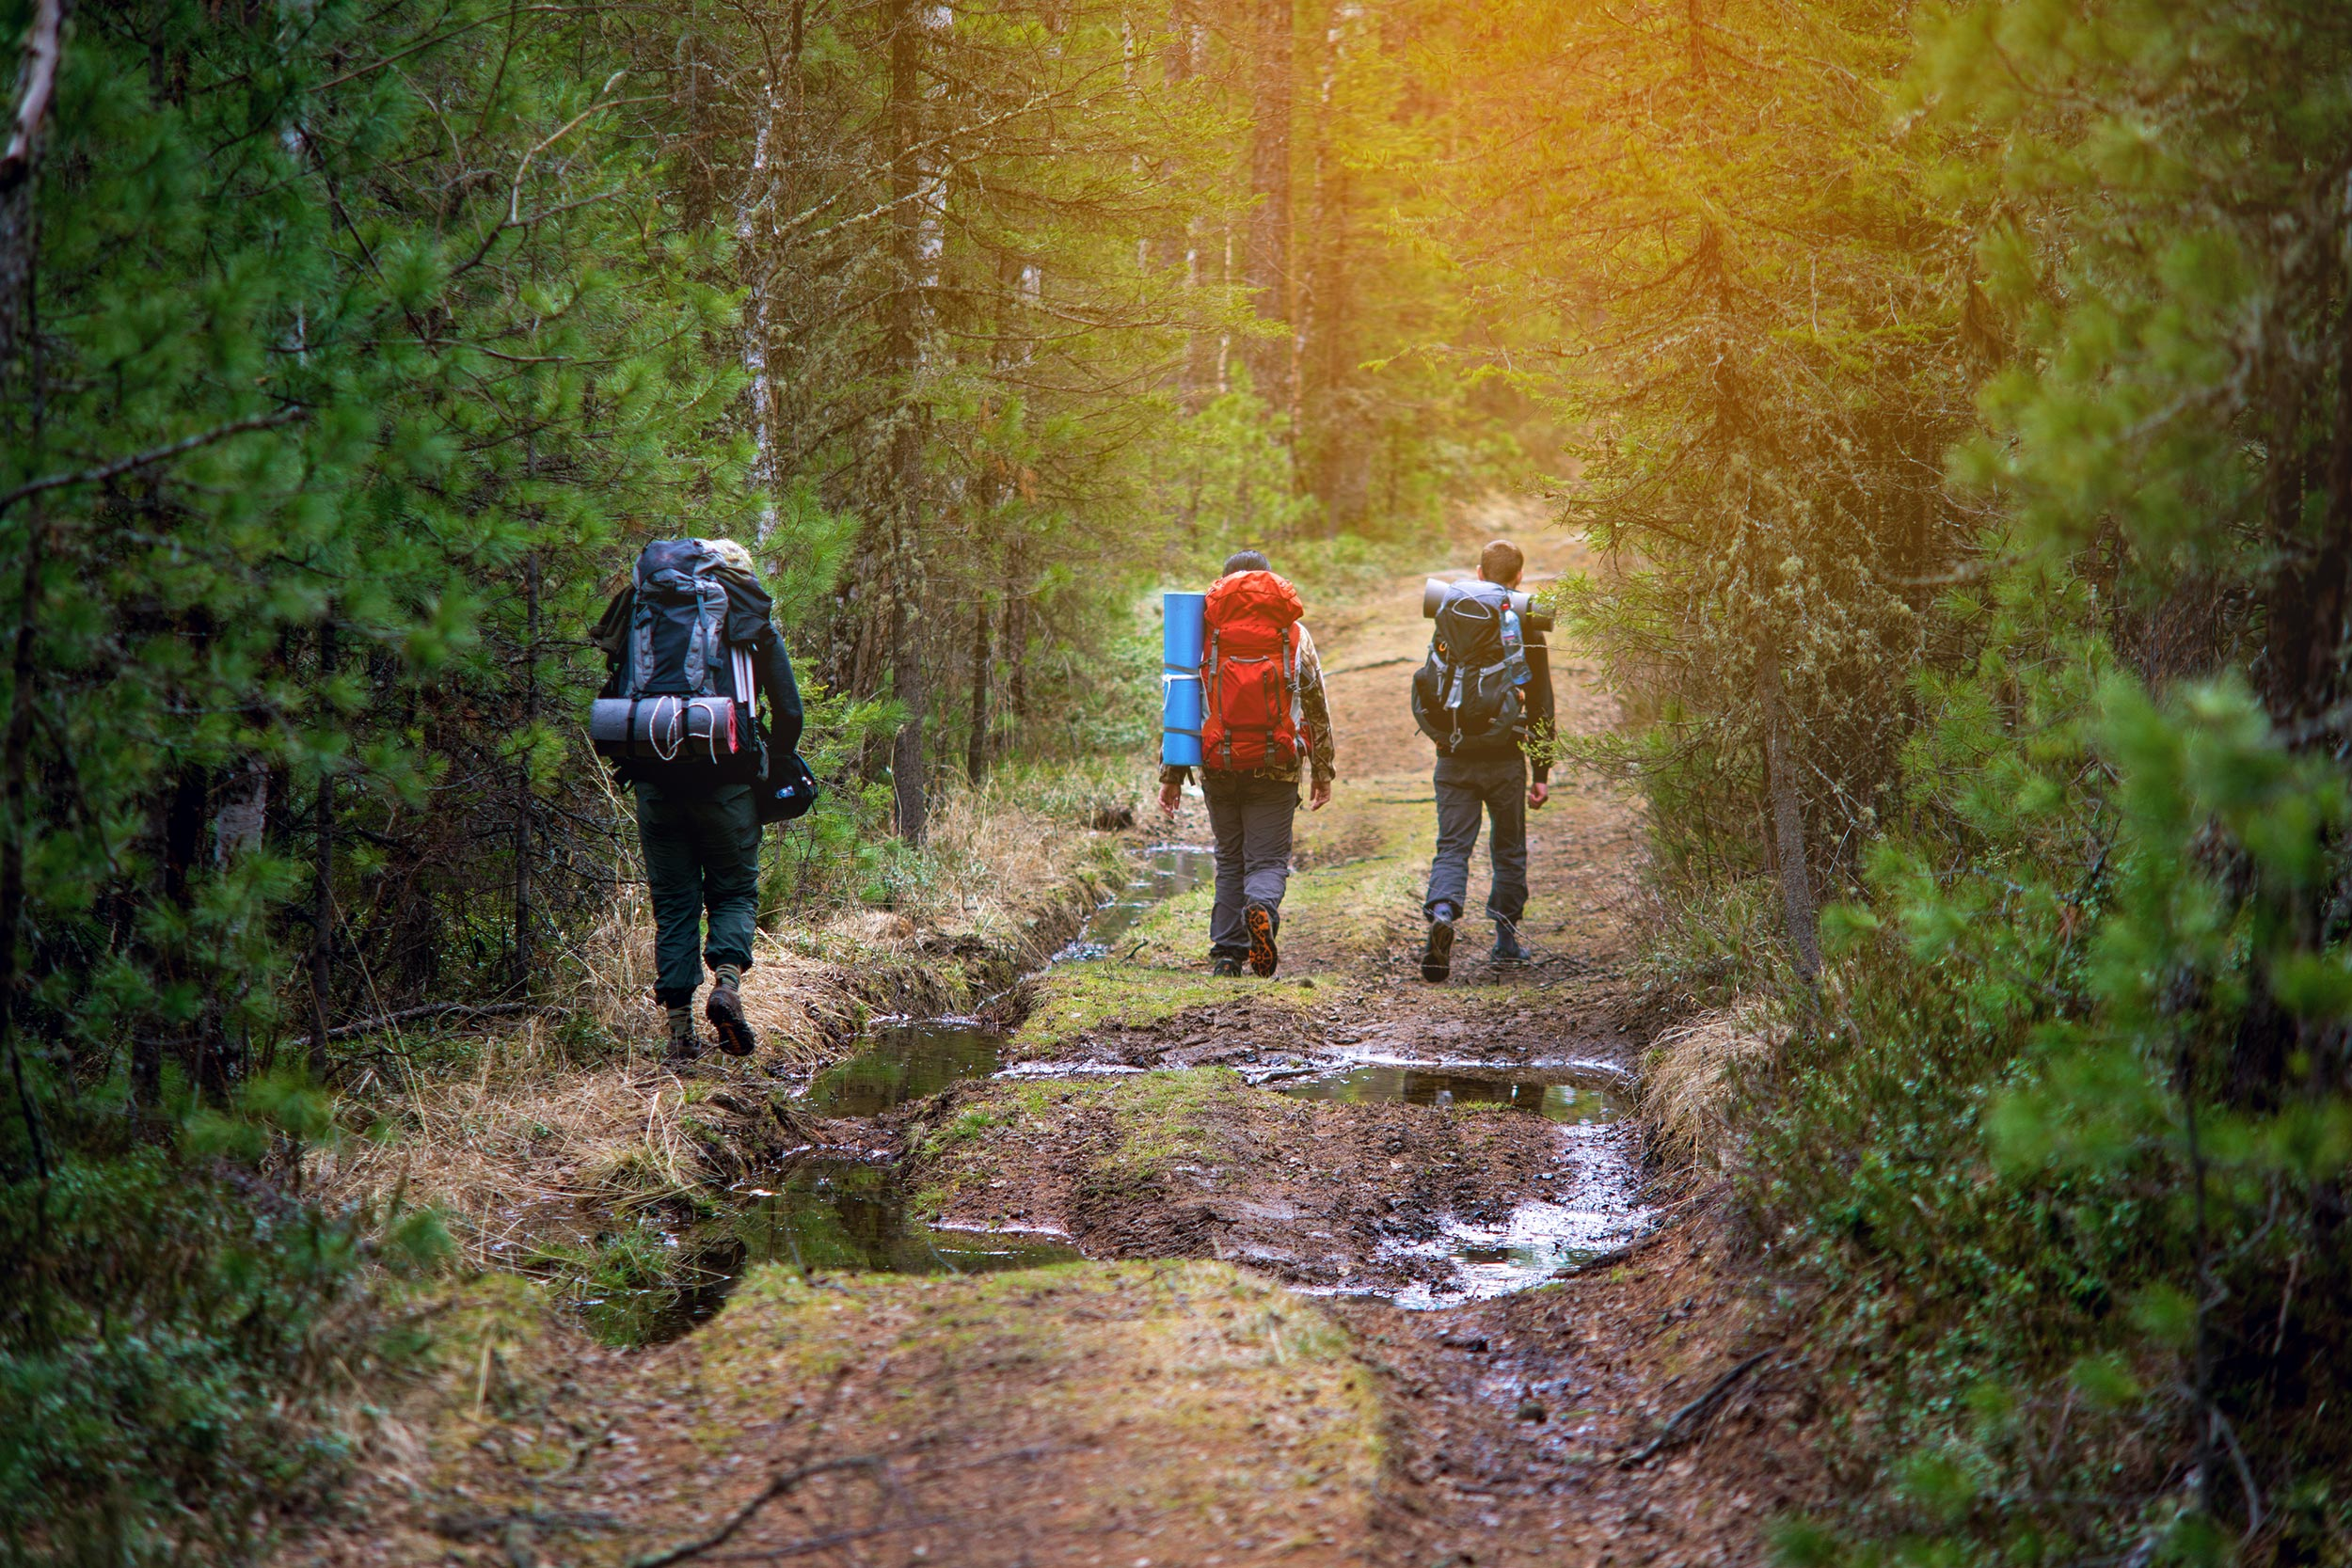 People with backpacks hike through the woods